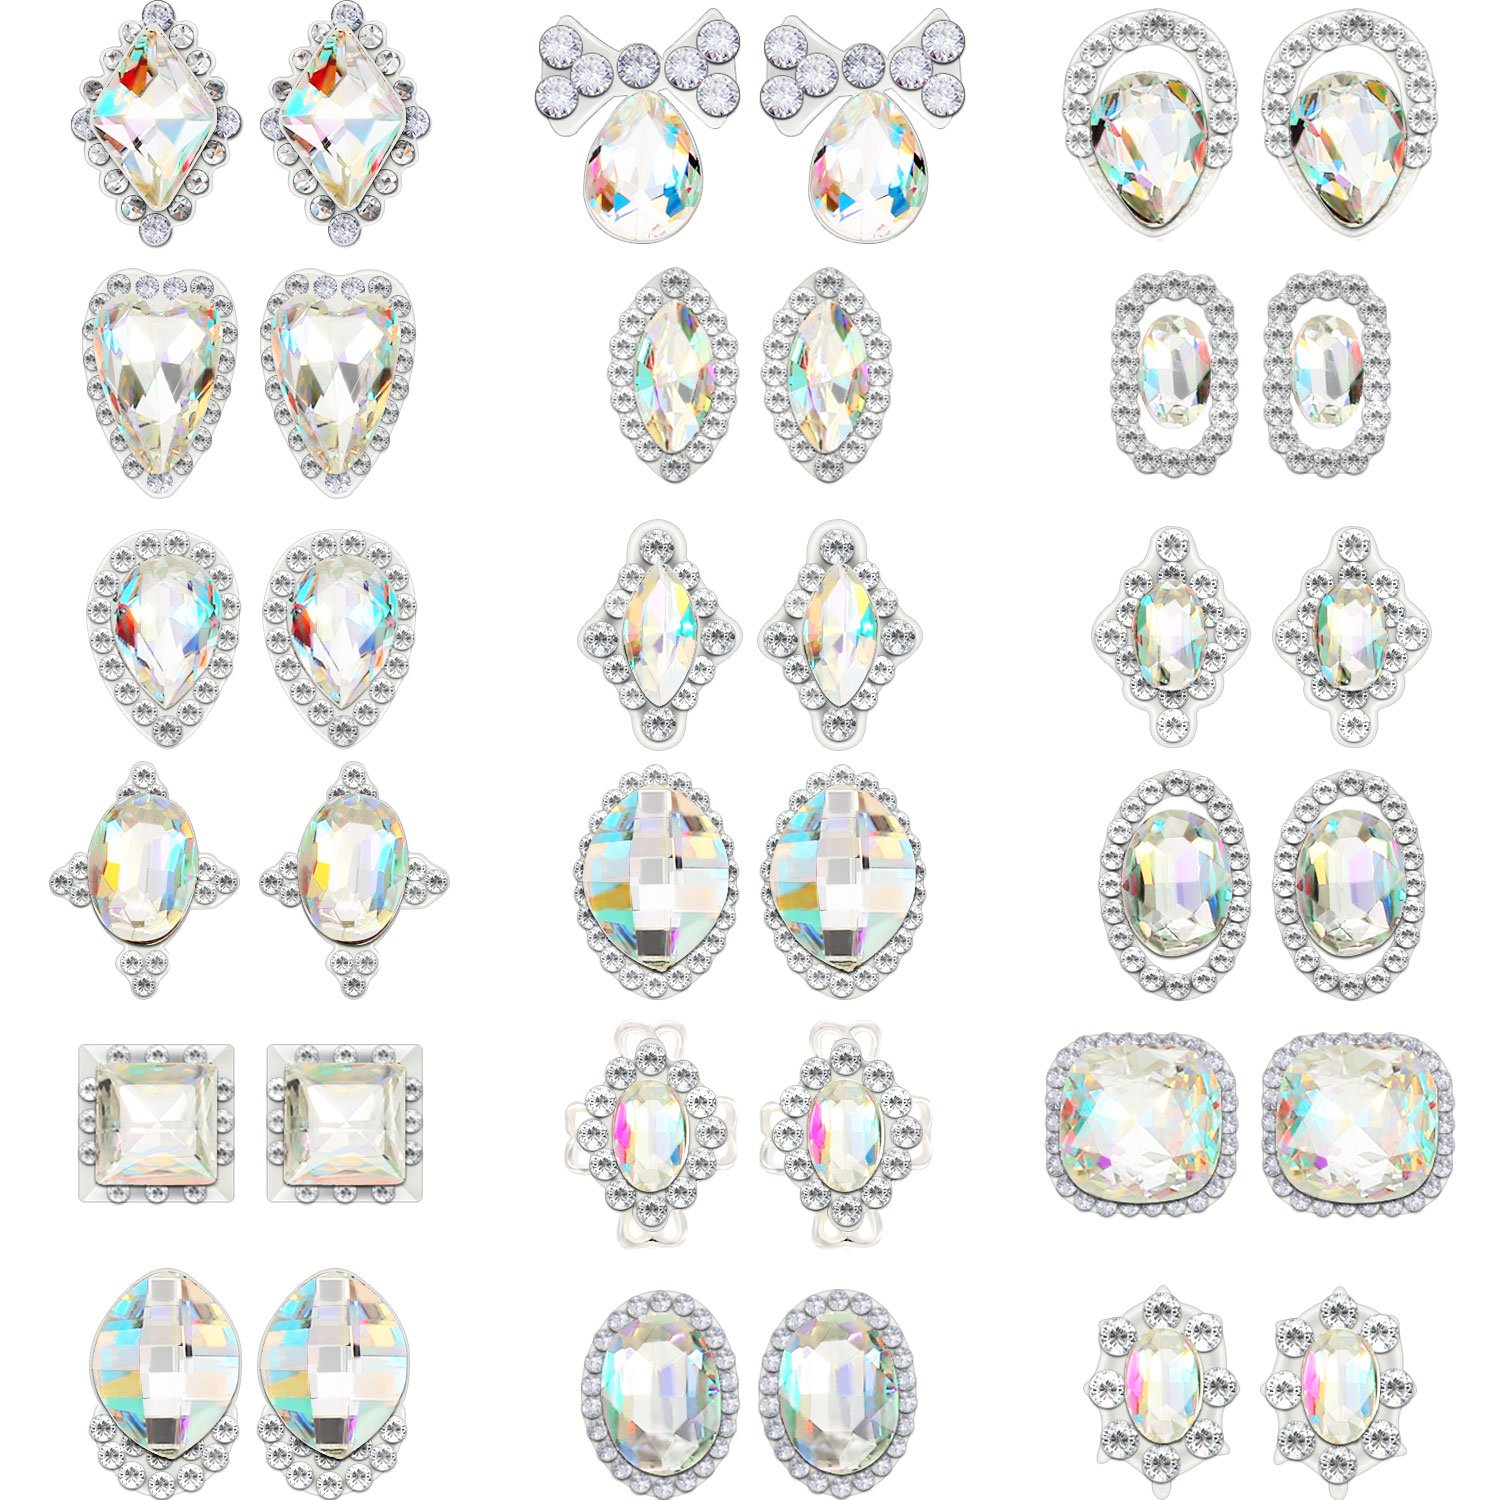 Bememo 36 Pieces 3D Nail Art Rhinestones Crystal Glass Metal Gem Stones Manicure Studs Nail Tips for Nail Art DIY (Style 1) by Bememo (Image #1)